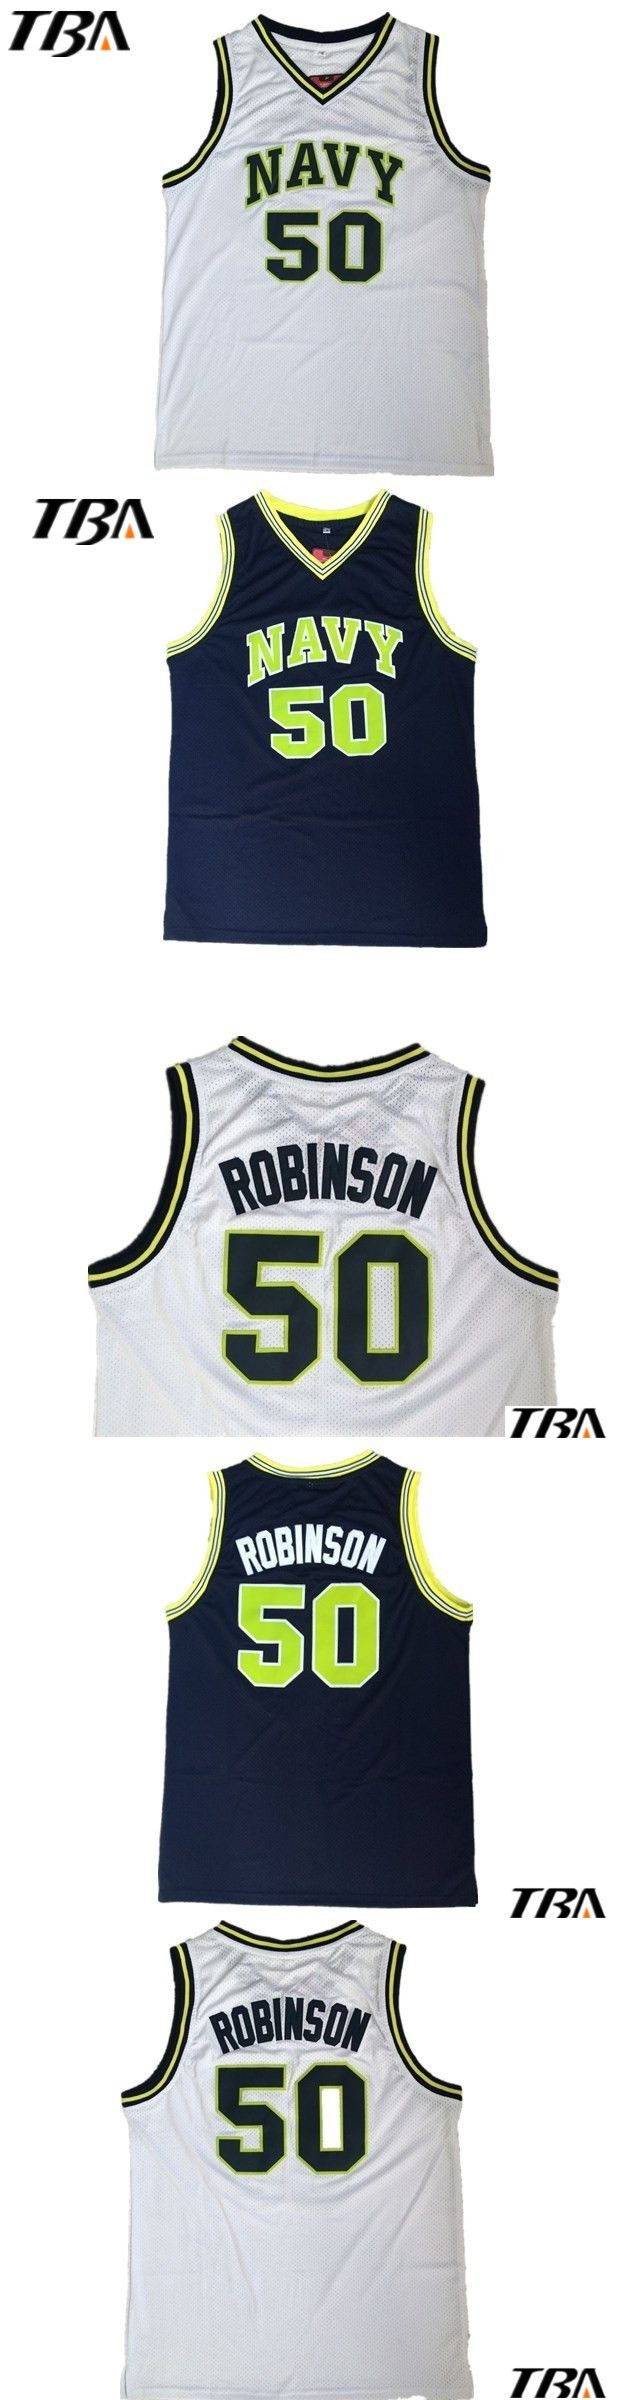 NEW The Admiral David Robinson Navy Black White Stitched Basketball Jersey Sewn Camisa Embroidery Logos